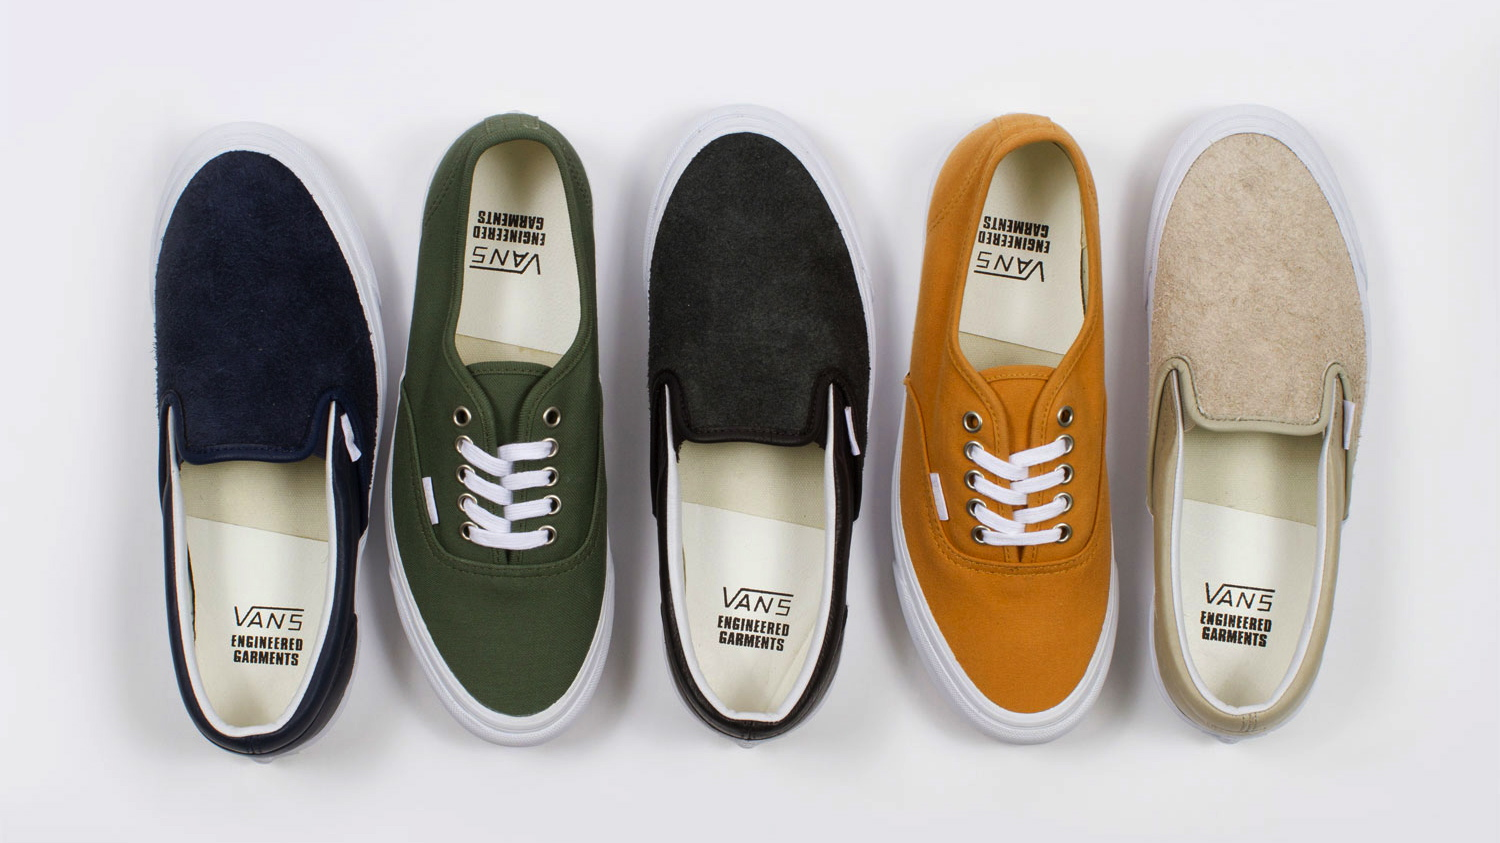 engineered garments x vault by vans collection